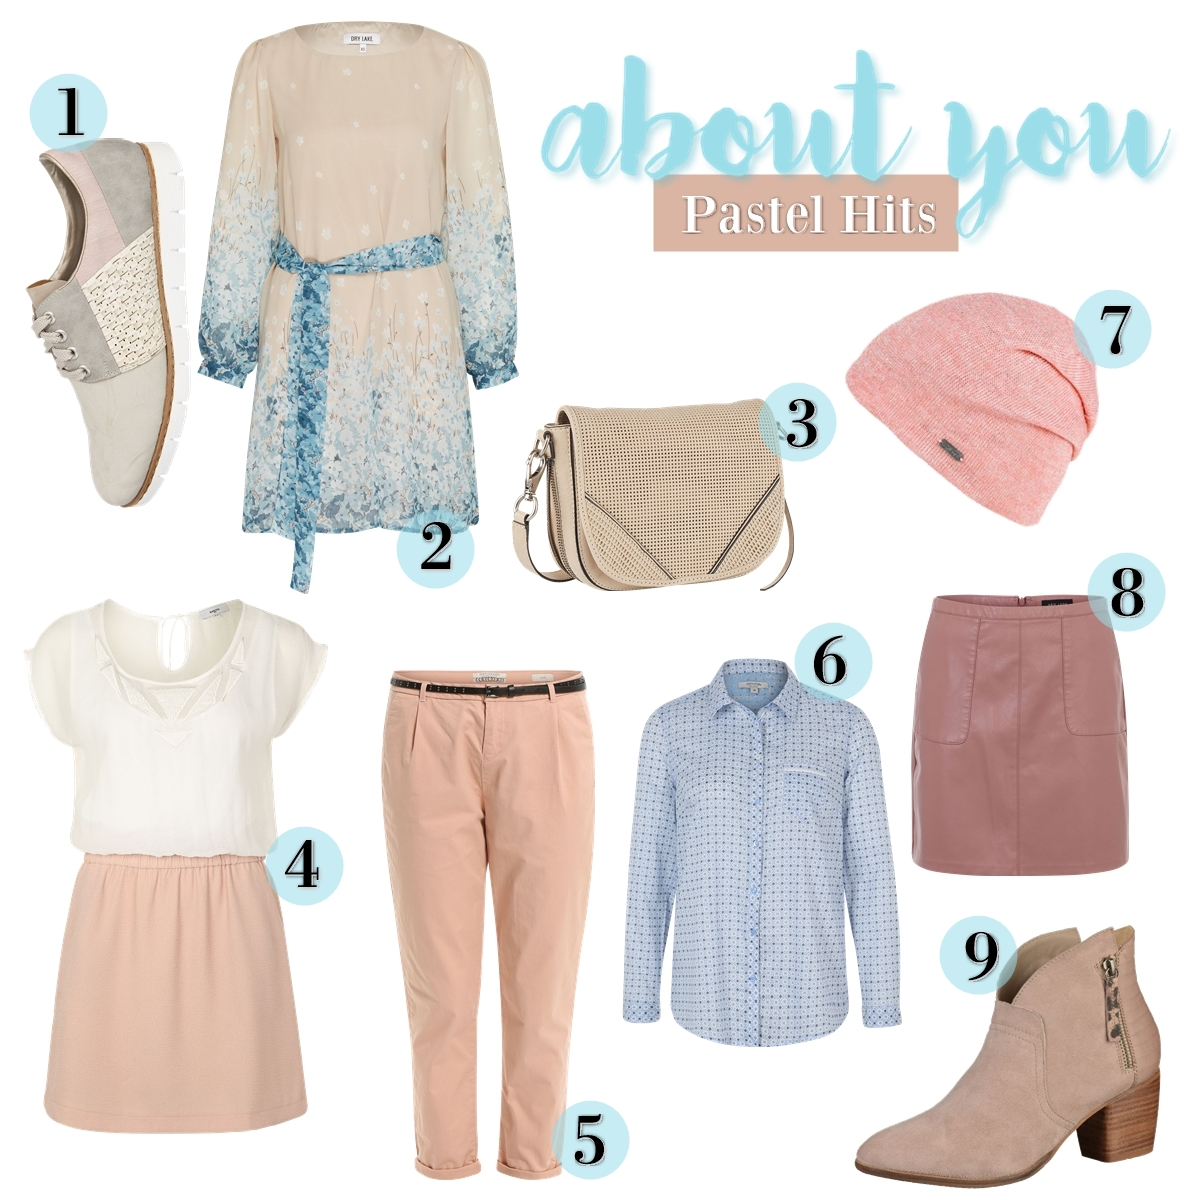 Soft Pastels - Favorite Fashion Items Collage 2